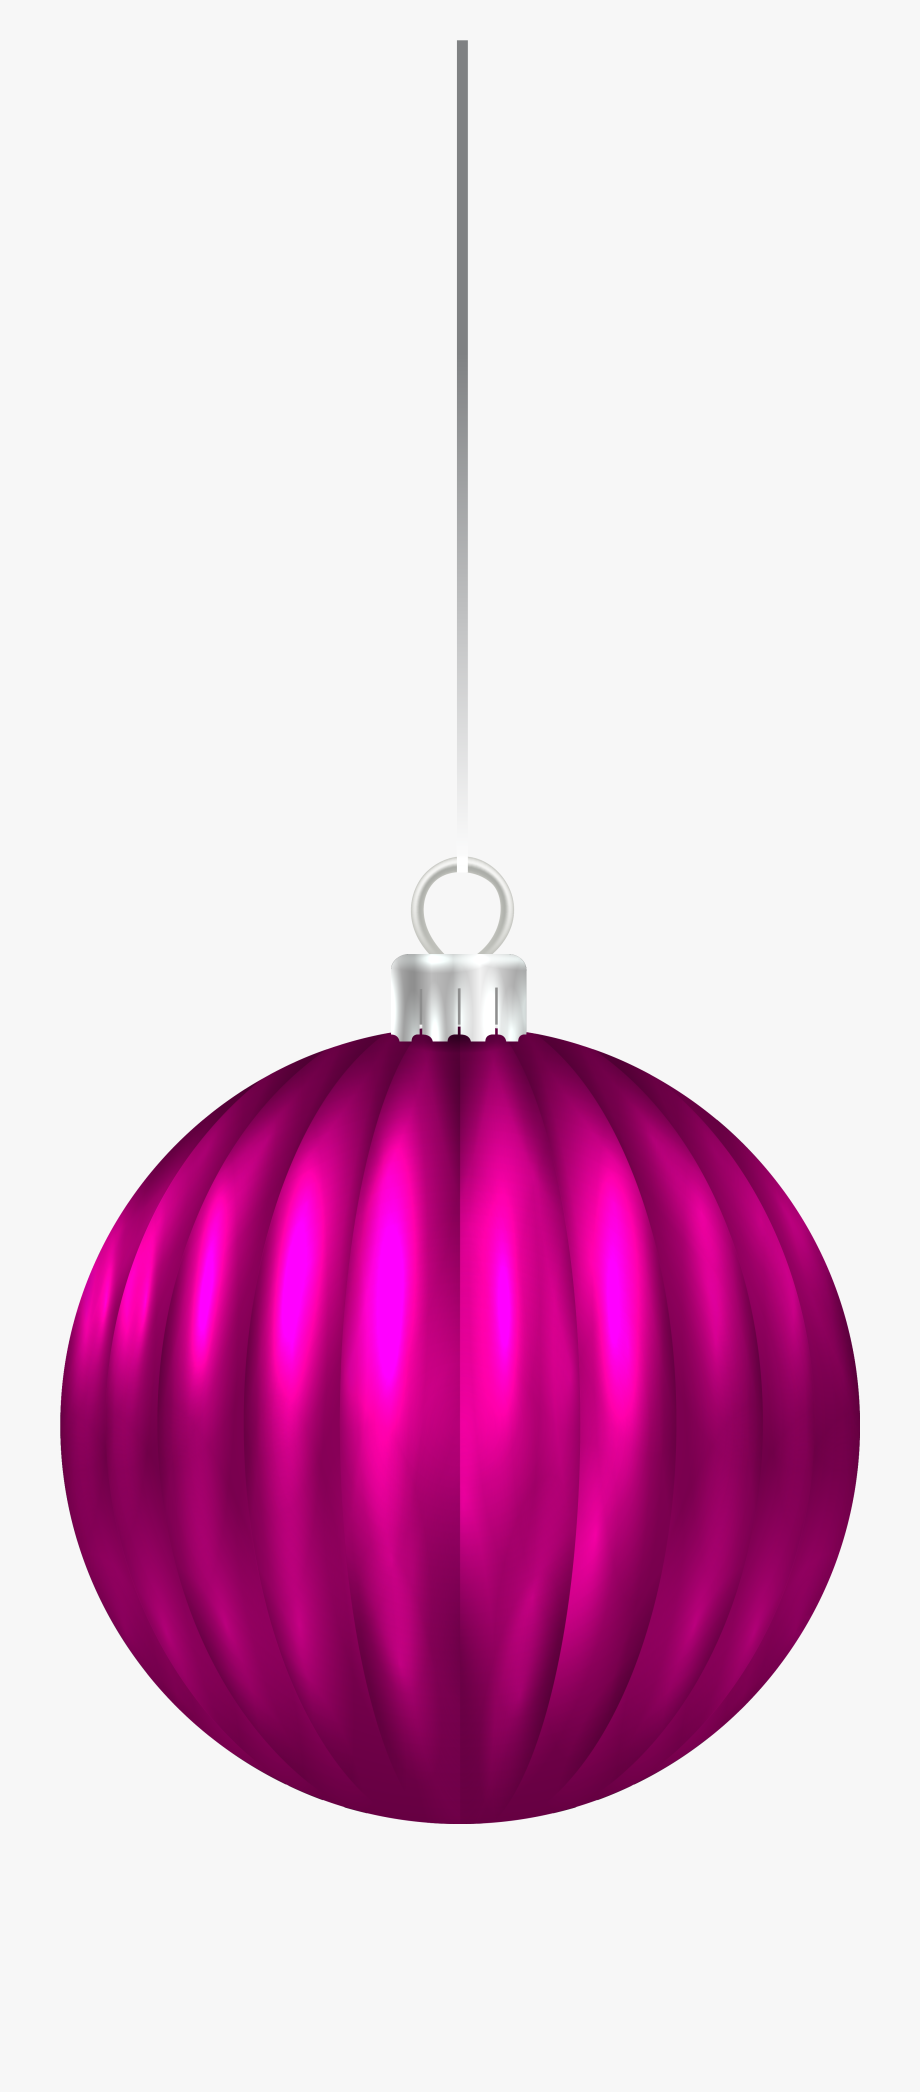 Pink Ornament Clipart Vector Transparent Download.